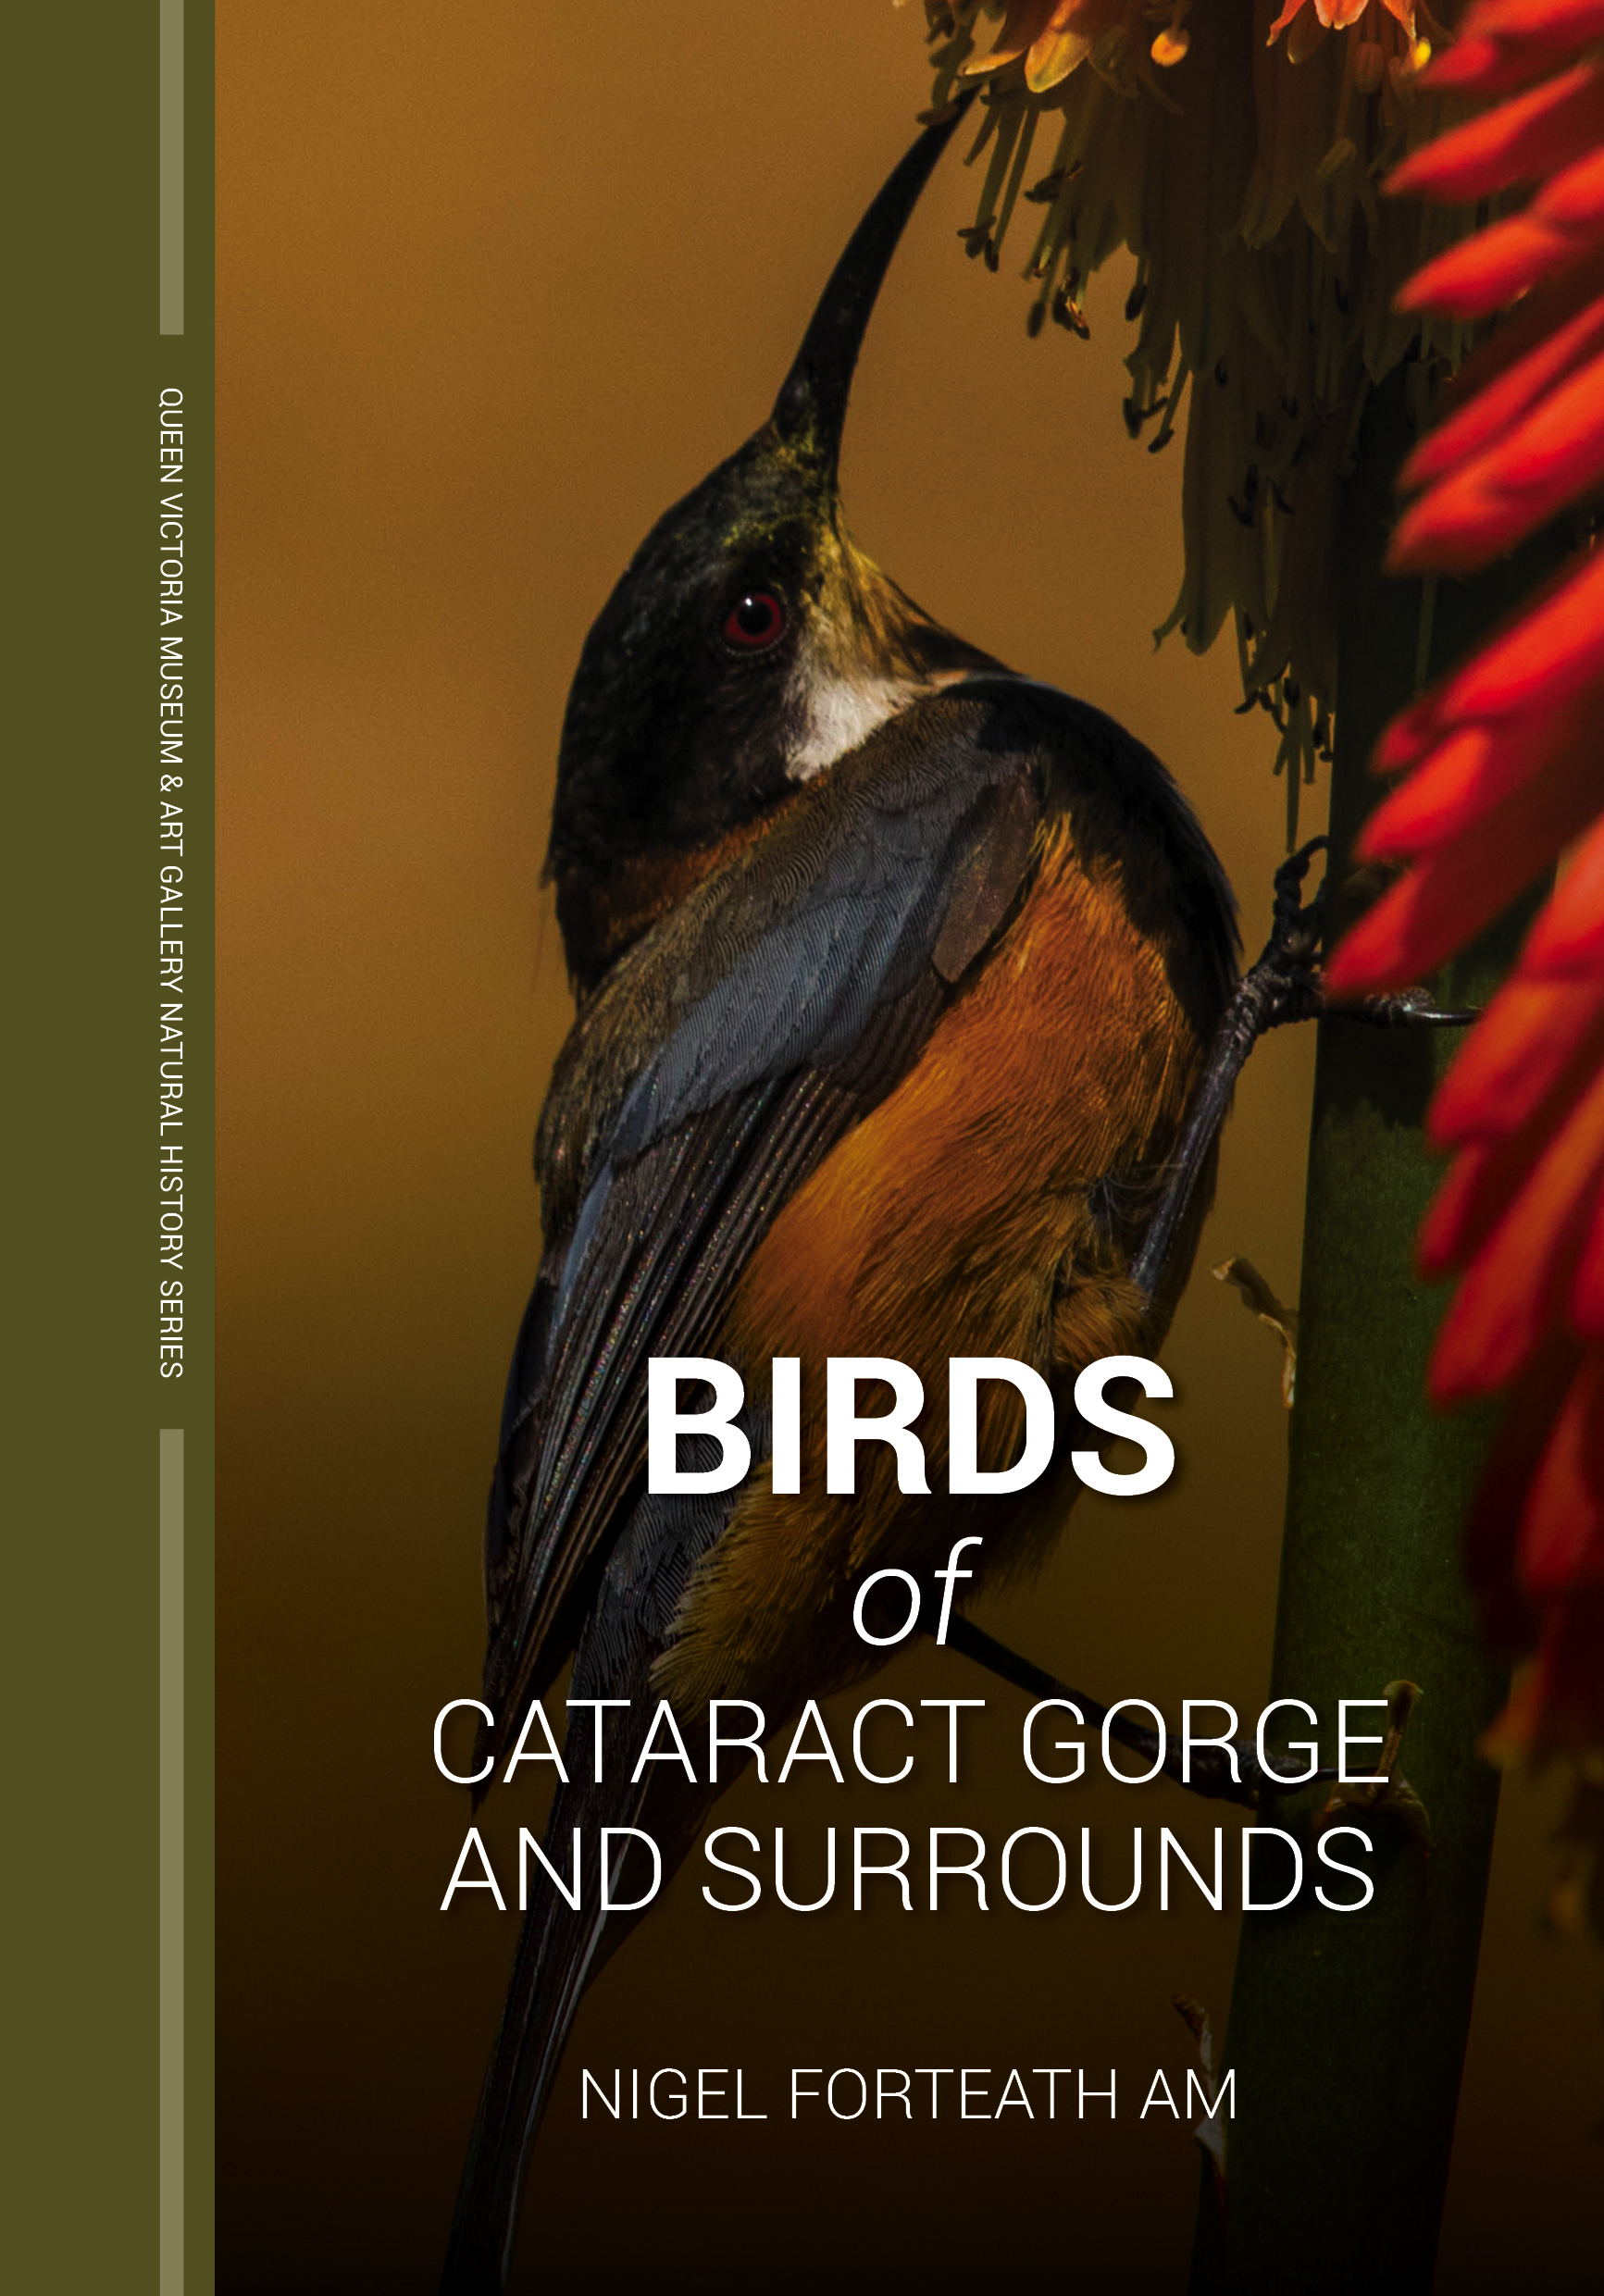 Birds of Cateract Gorge cover.jpg